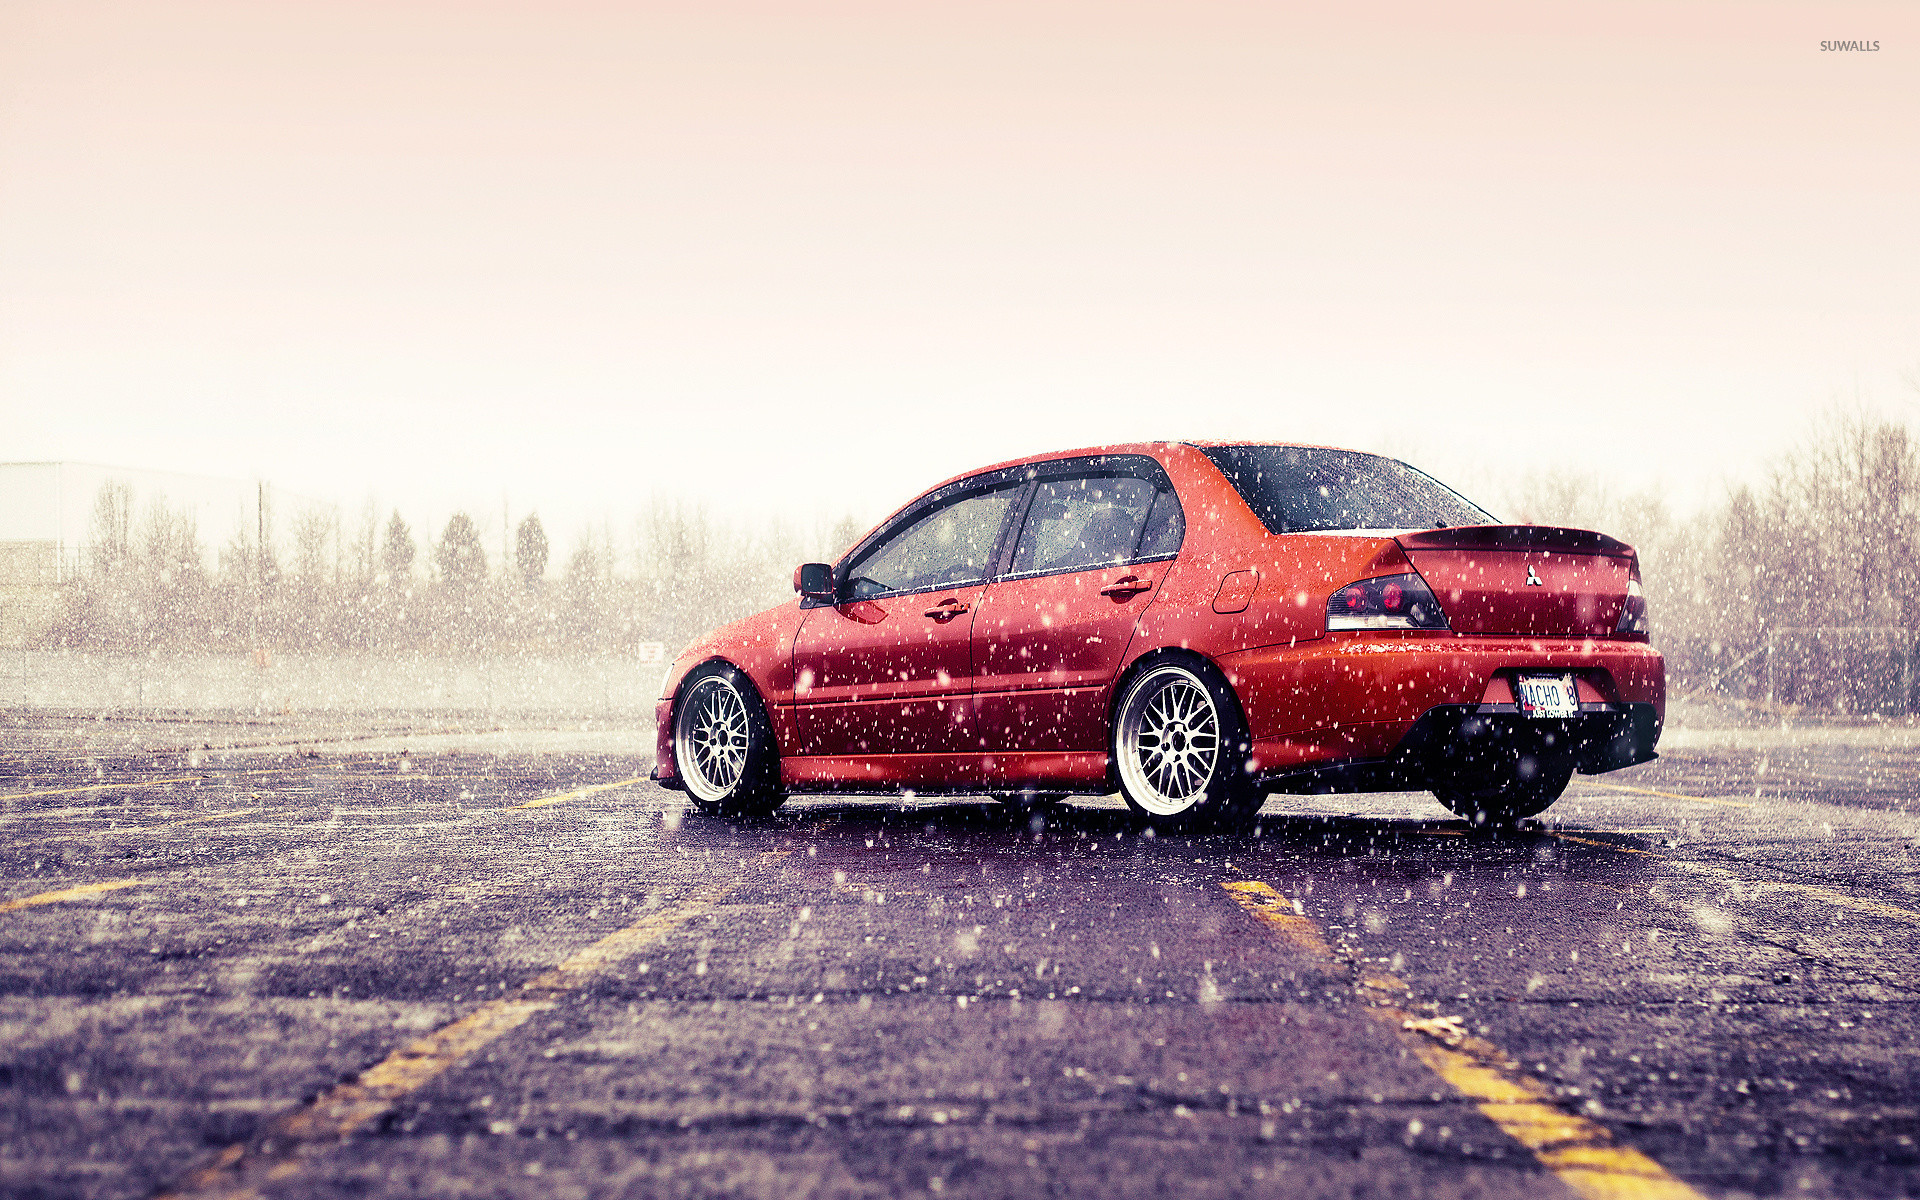 Mitsubishi Lancer Evolution On A Rainy Day Wallpaper Jpg